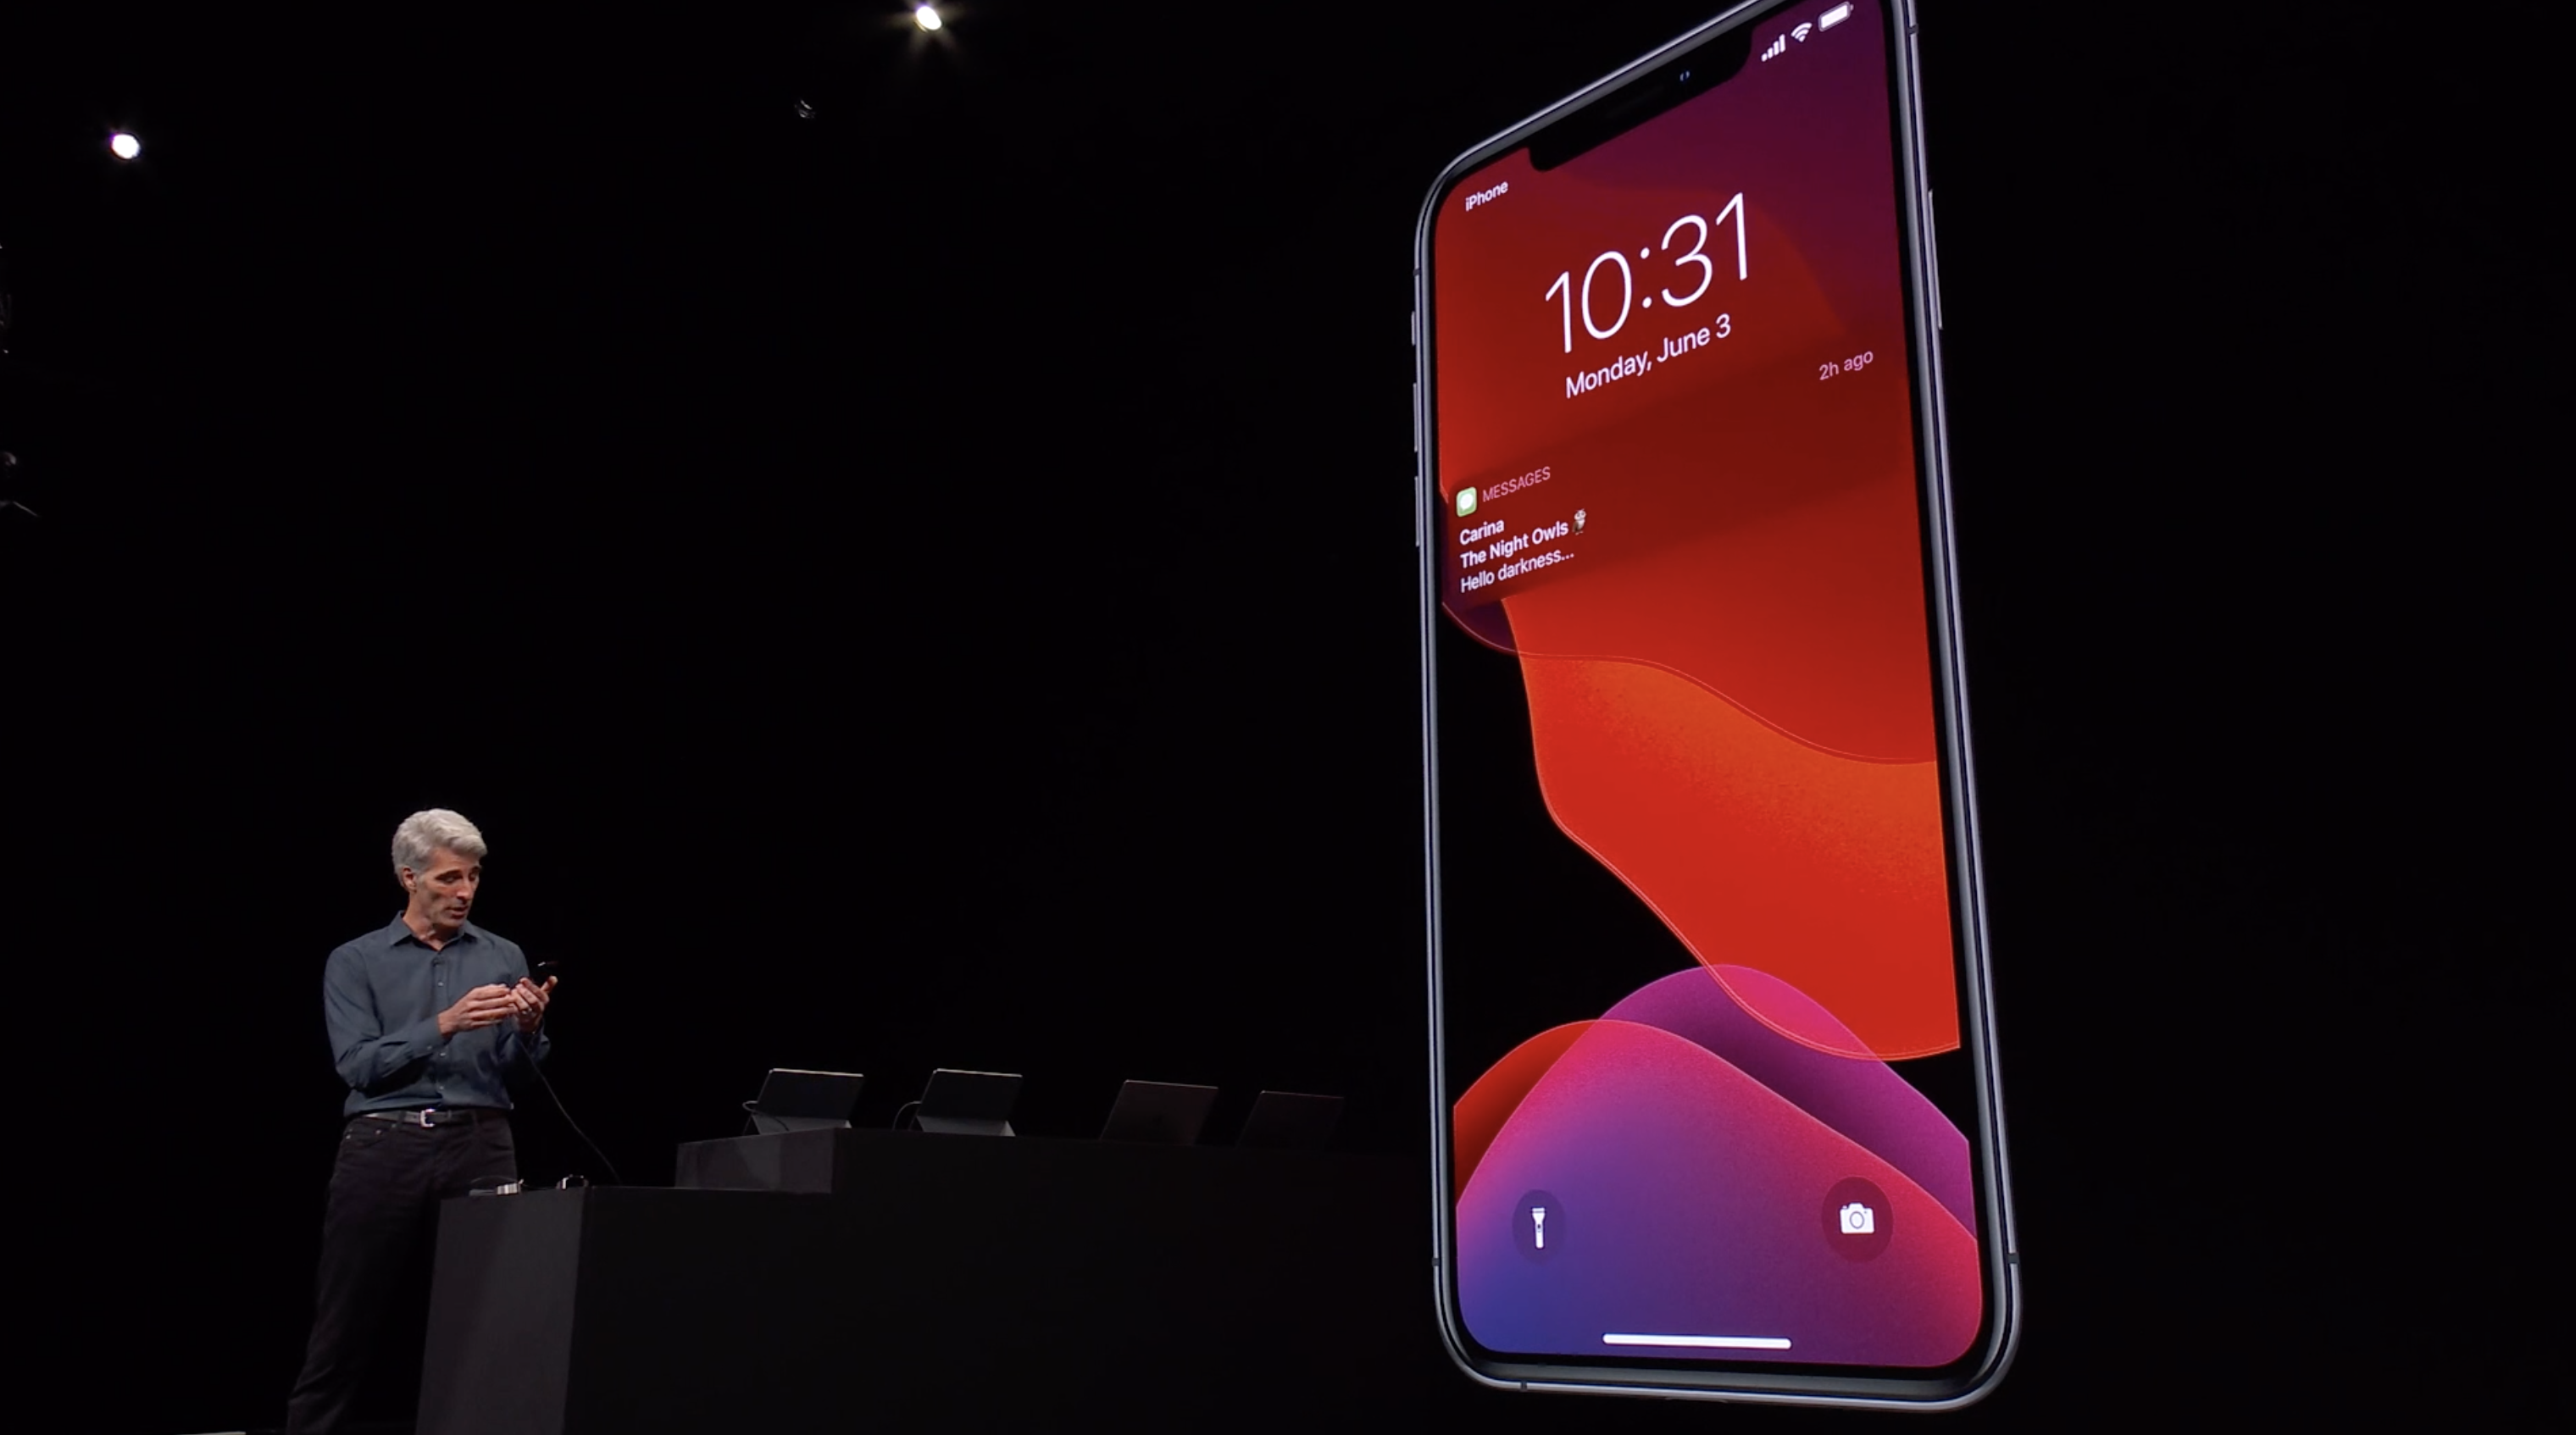 Apple officially unveils iOS 13 for iPhone at WWDC 2019 with Dark